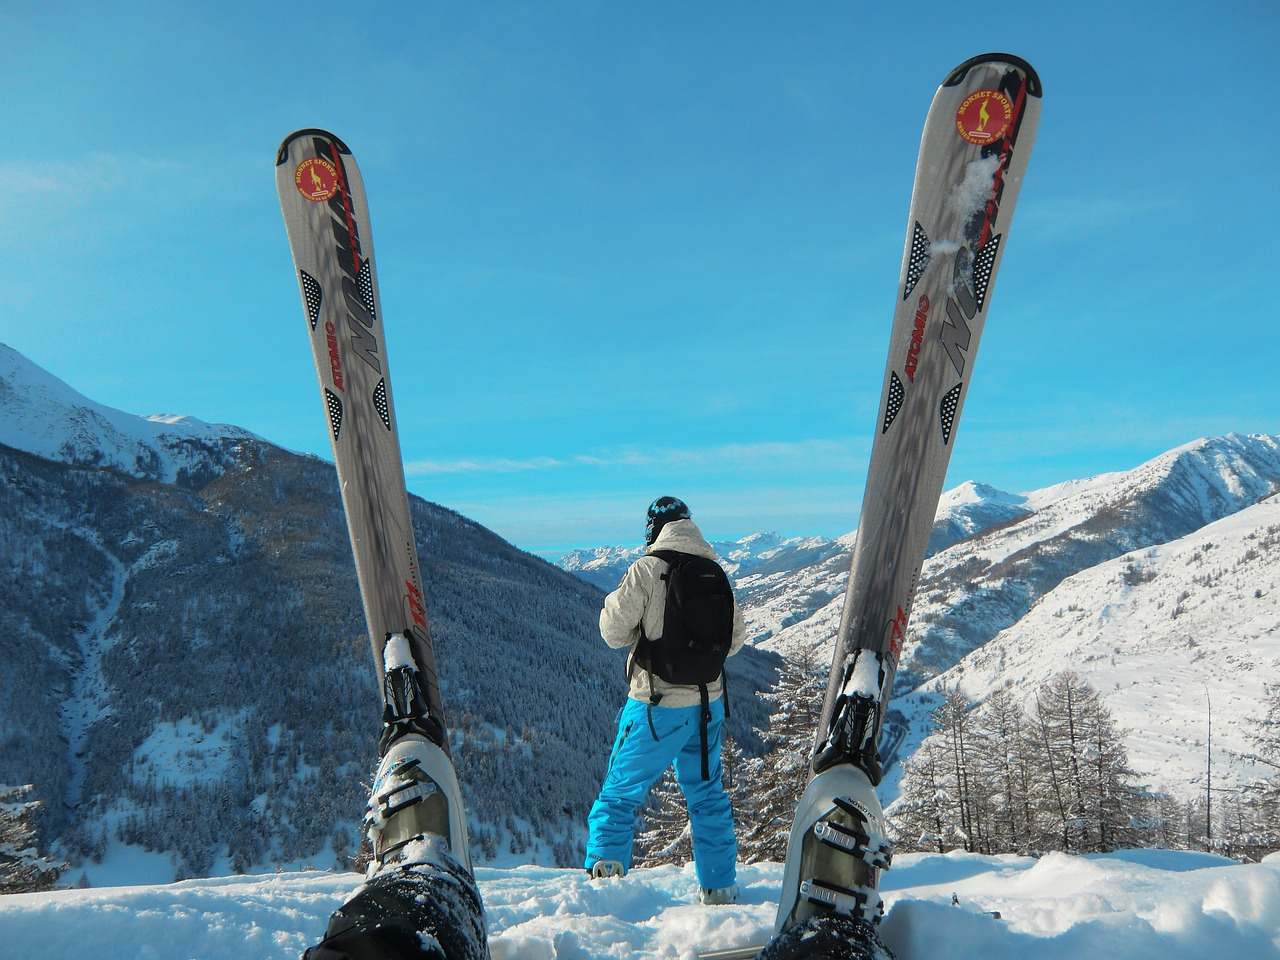 Best Ski Resorts in Europe for 2019